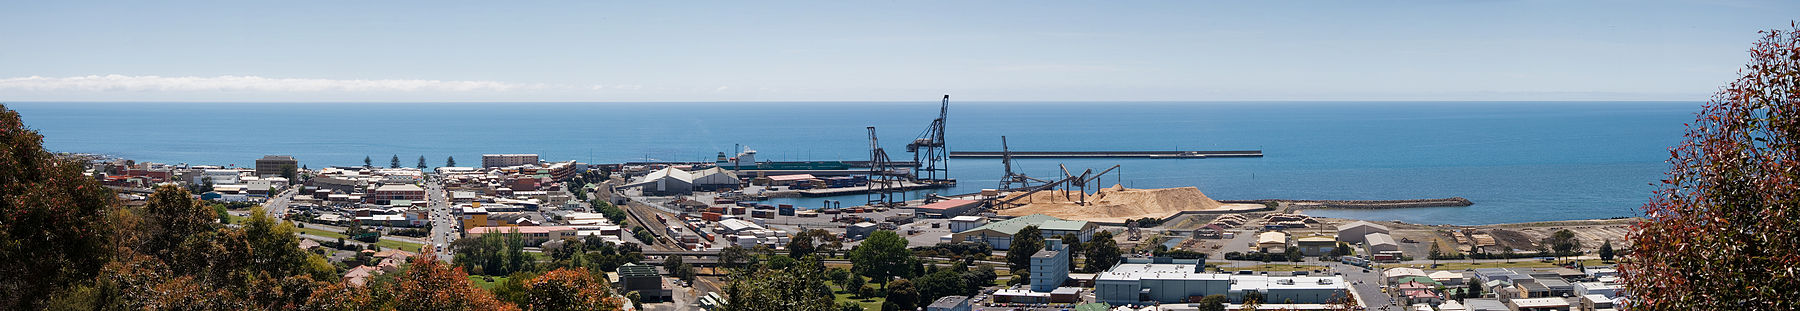 Burnie CBD and Port Panorama.jpg